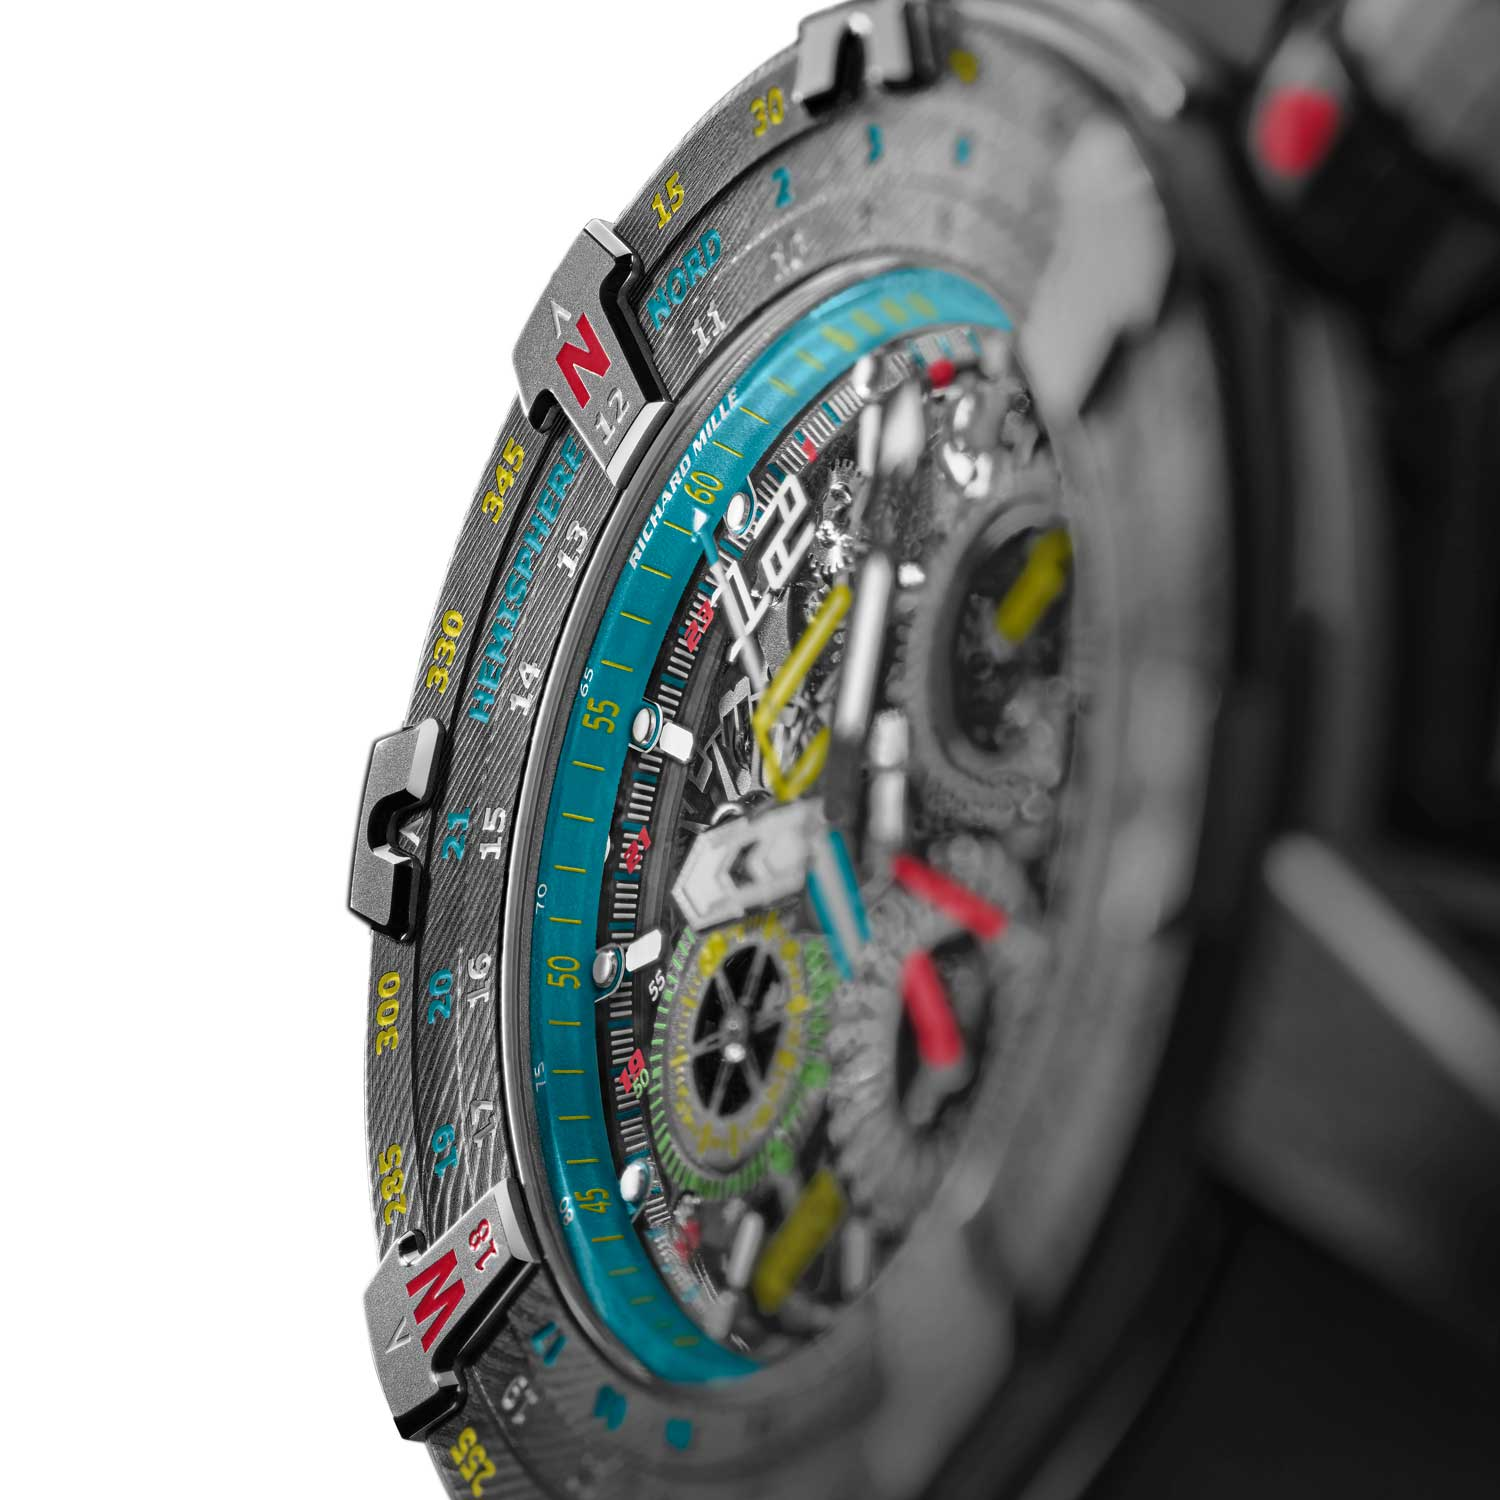 The RM 60-01 offers the orientation of both the Northern and Southern Hemispheres without any calculation.